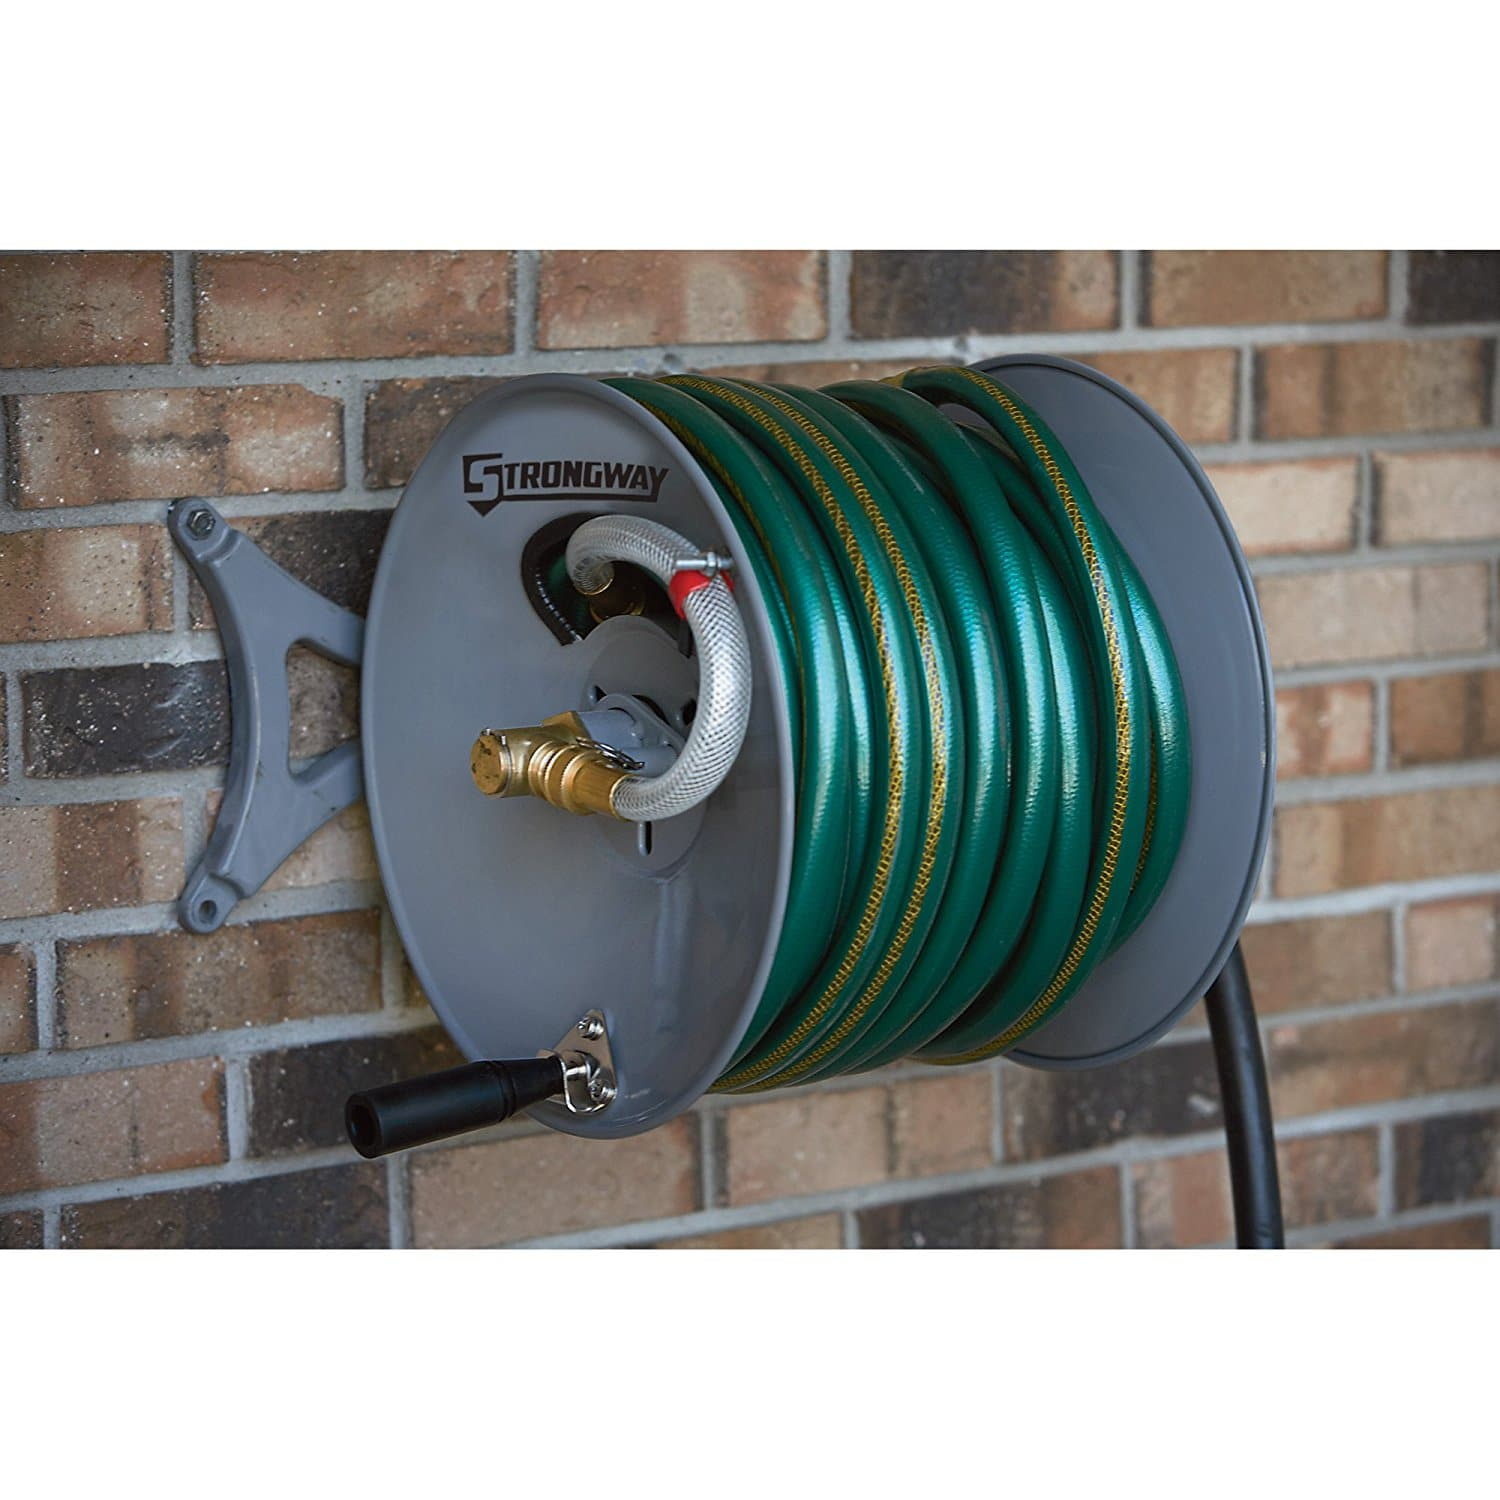 Strongway garden hose reel review for Strongway garden hose reel cart